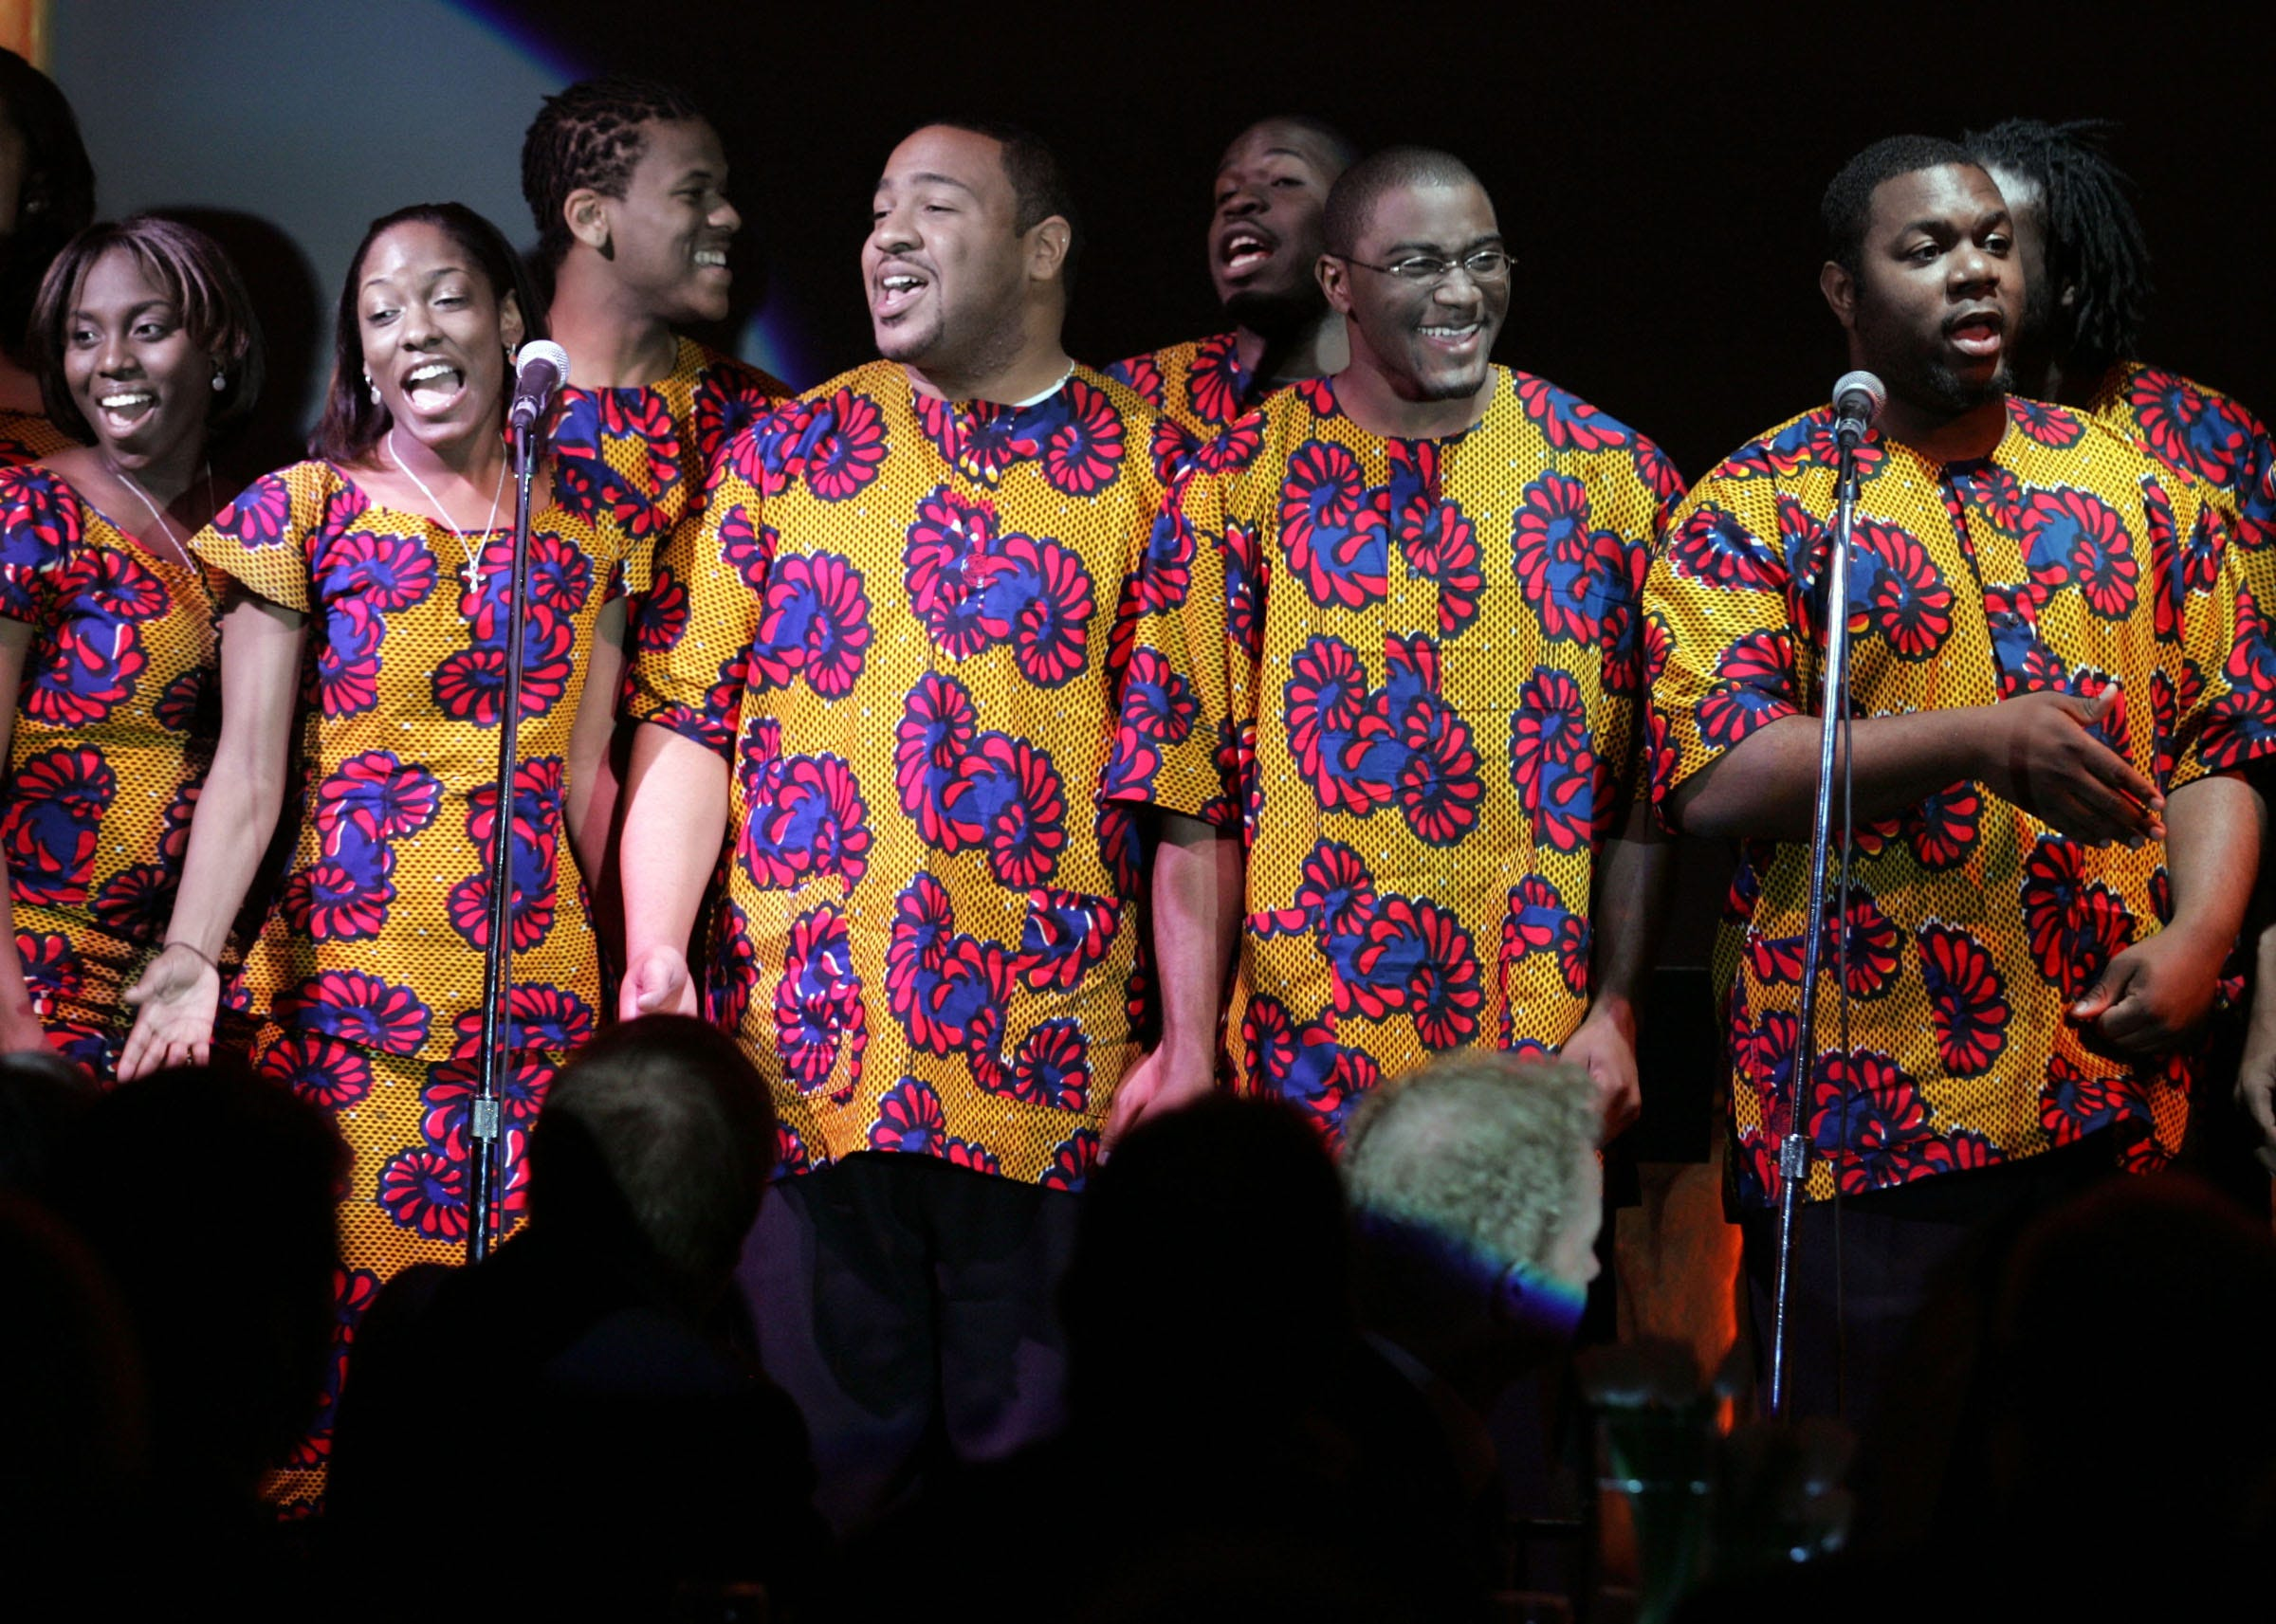 The Fisk University famed Jubilee Singers are performing on stage after being honored during the 2007 Recording Academy Honors ceremony at the Lowes Vanderbilt Plaza Hotel April 8, 2007.